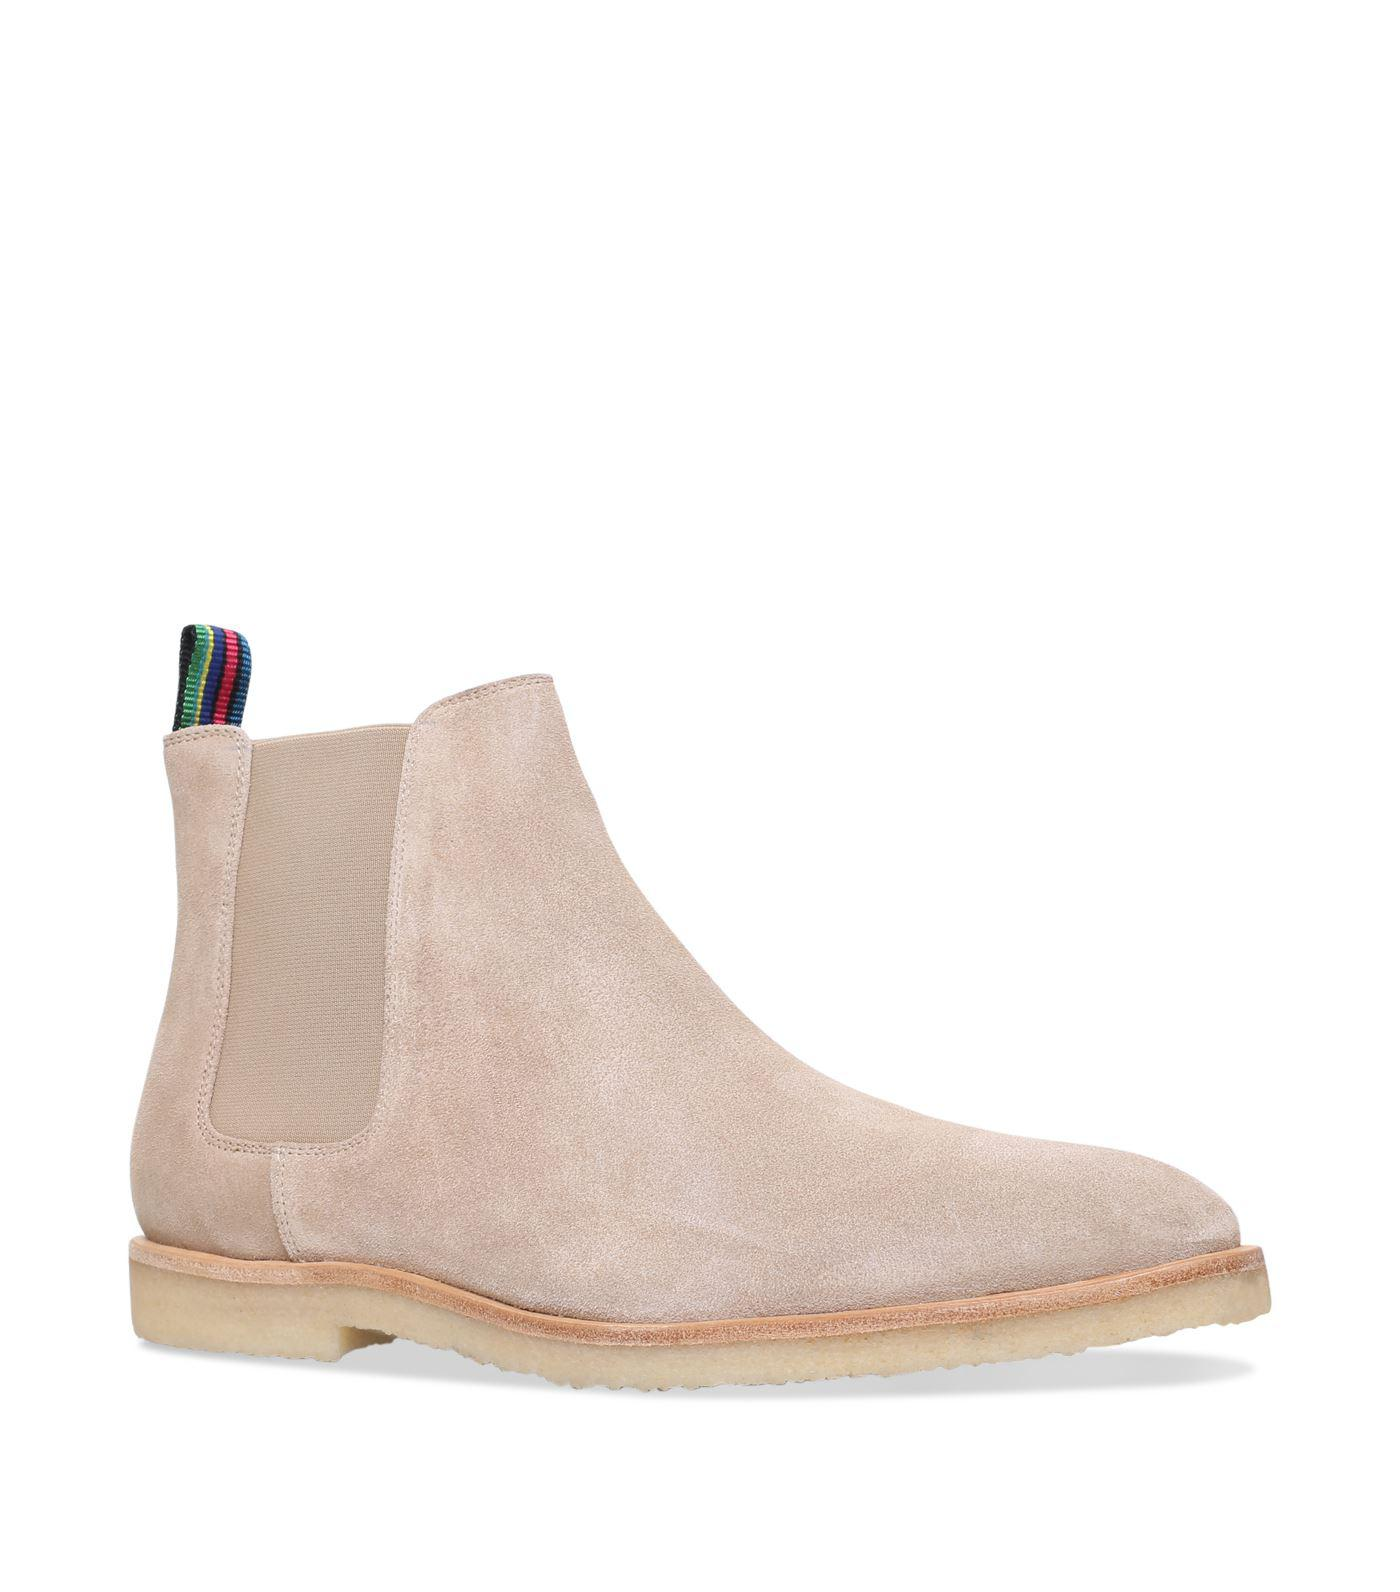 81d2709d0d1 Paul Smith Suede Andy Chelsea Boots in Brown for Men - Lyst